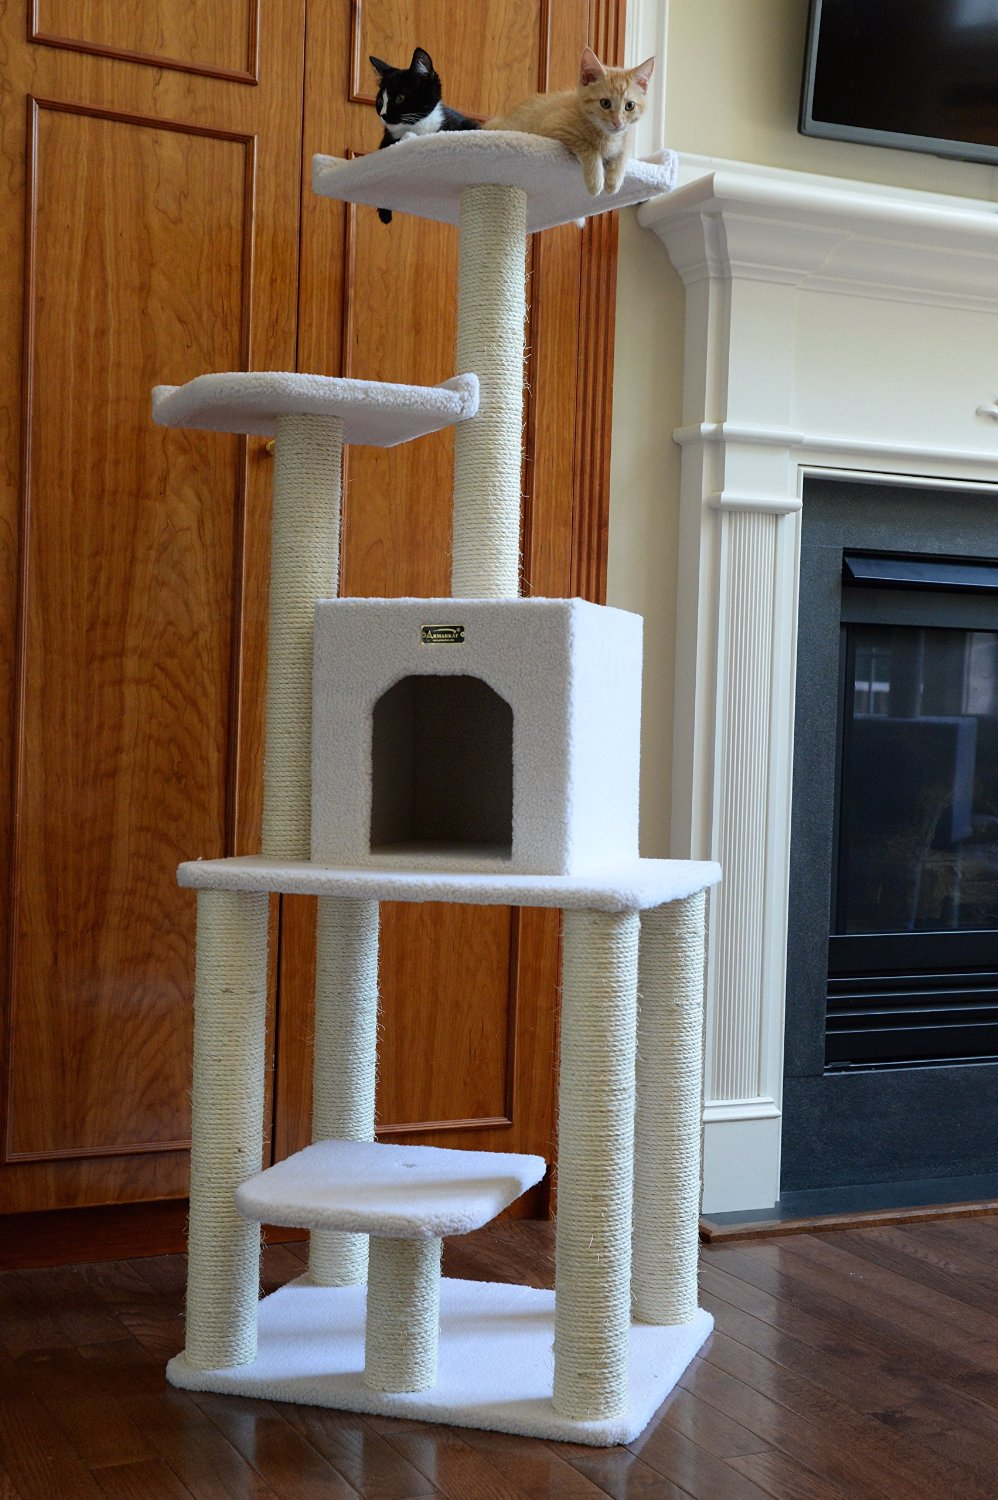 armarkat cat tree furniture condo height 60 inch to 70. Black Bedroom Furniture Sets. Home Design Ideas